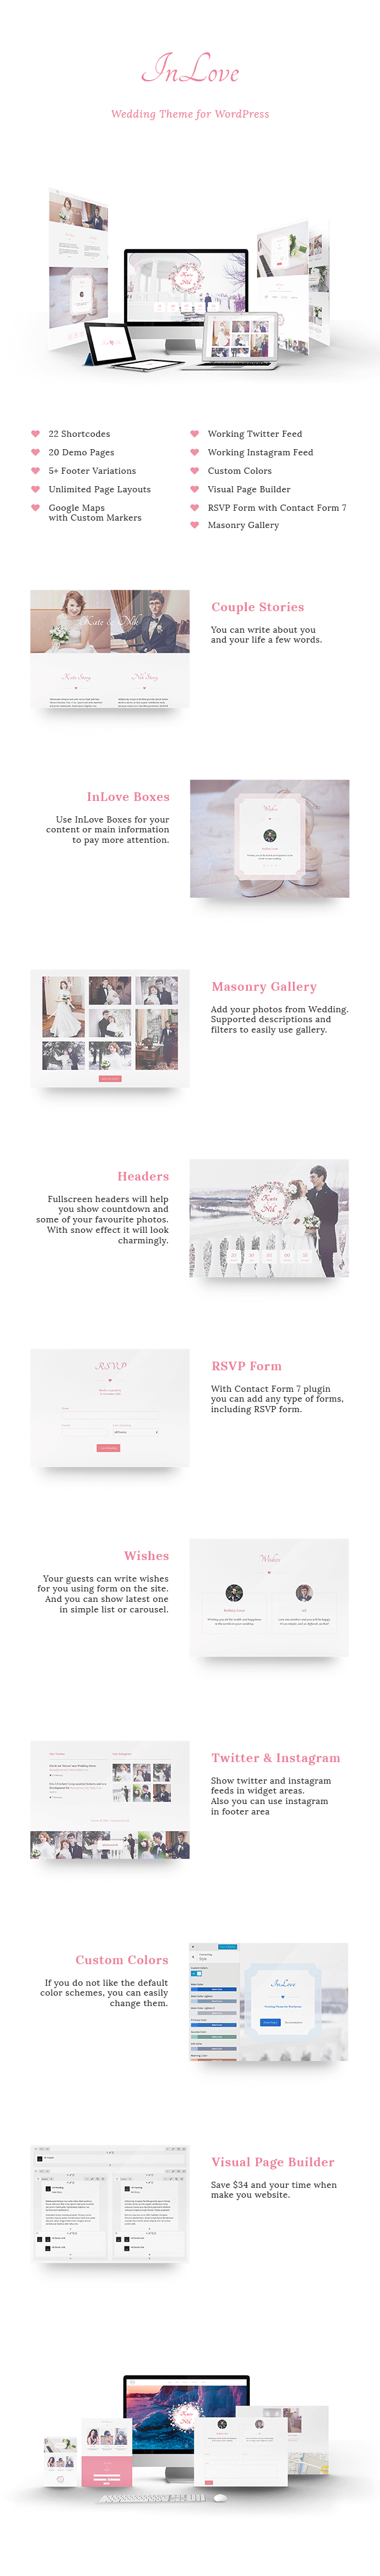 InLove Theme Features